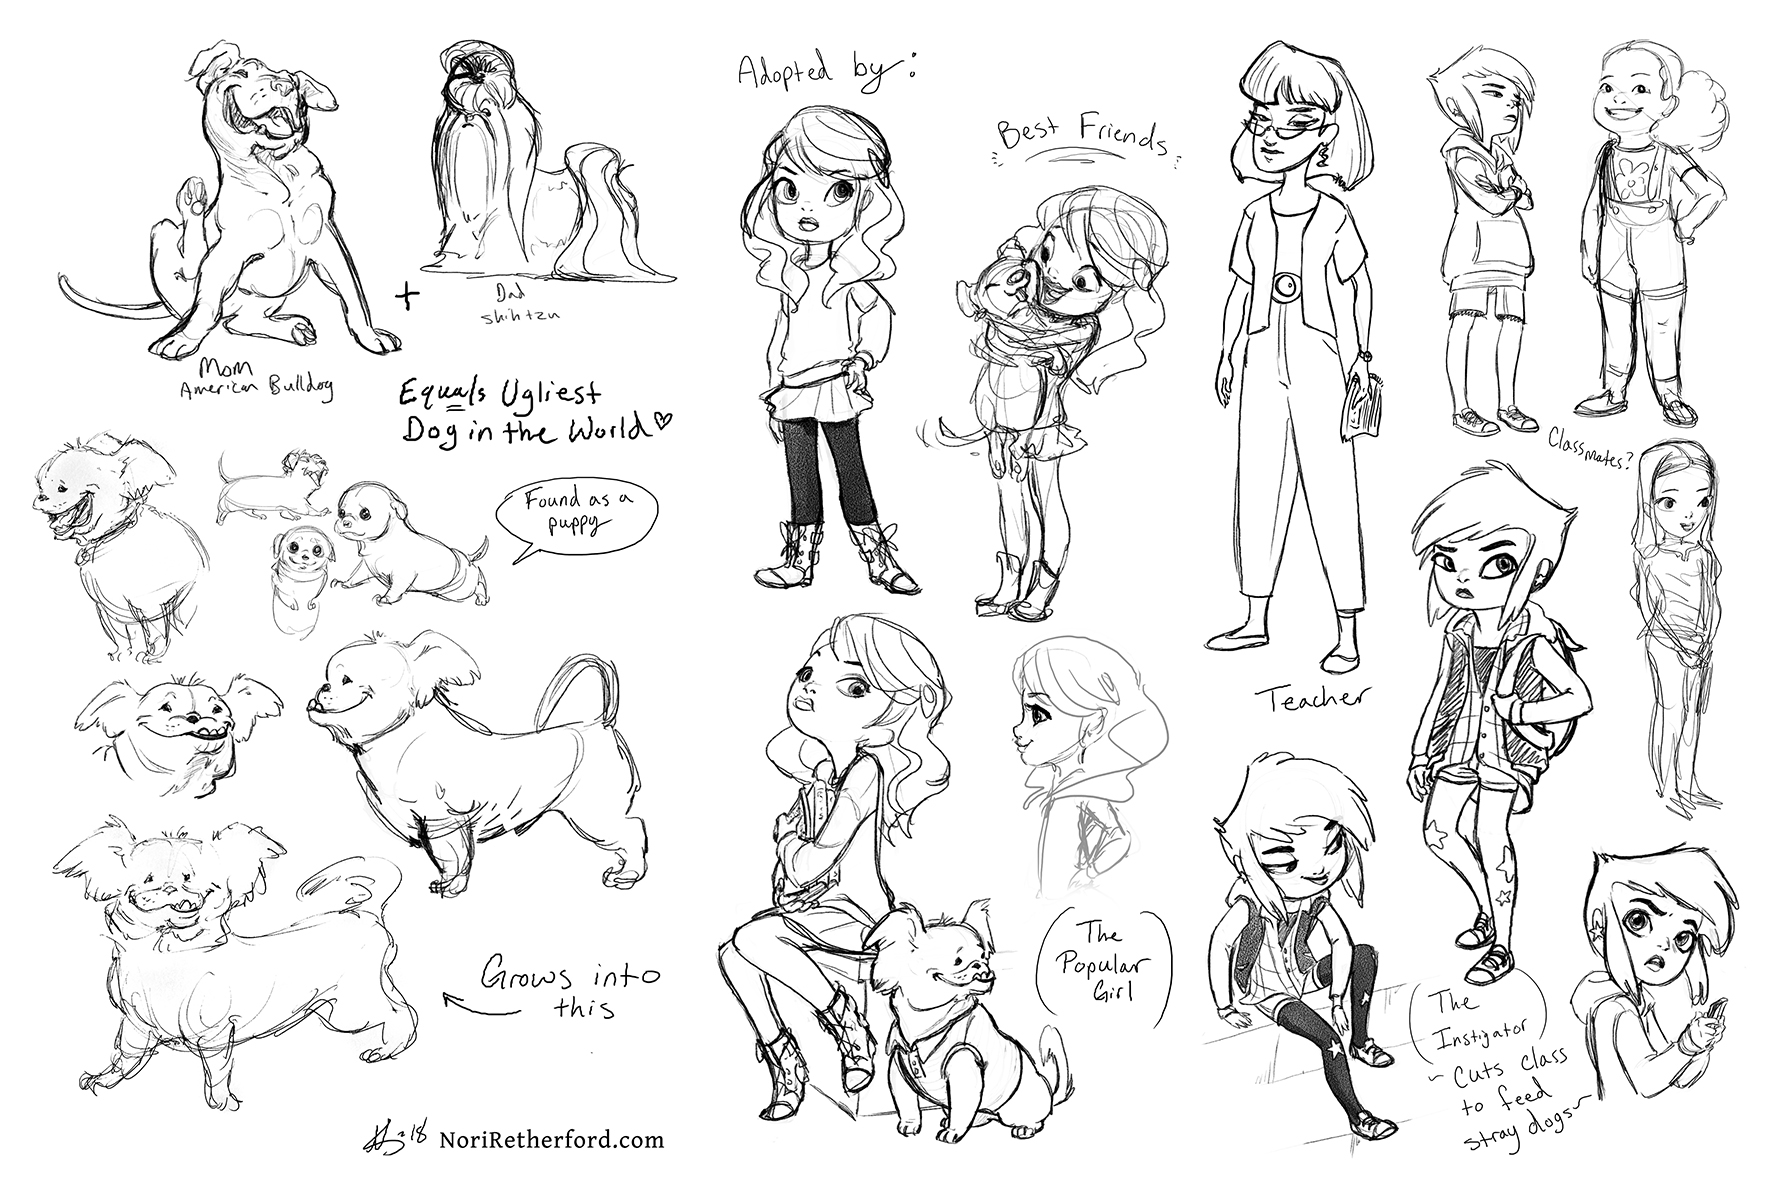 Character design exploration for a sequence about some middle schoolers and a dog - style inspired by Middle School Moguls, but tried to make it more animatable (2018)